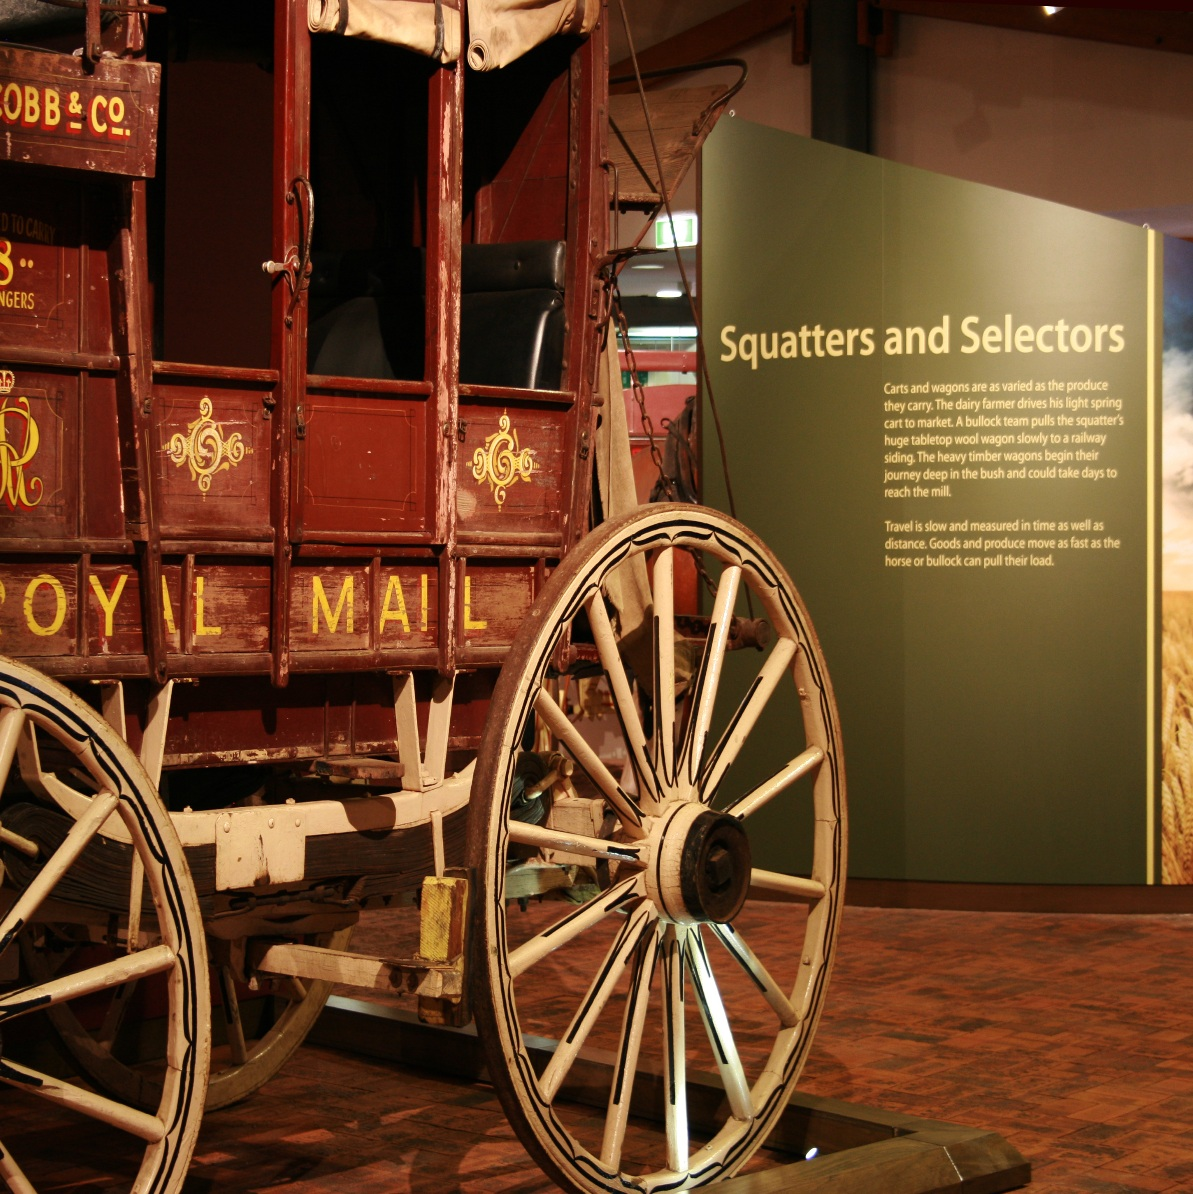 National Carriage Collection, Cobb & Co. Museum, Queensland